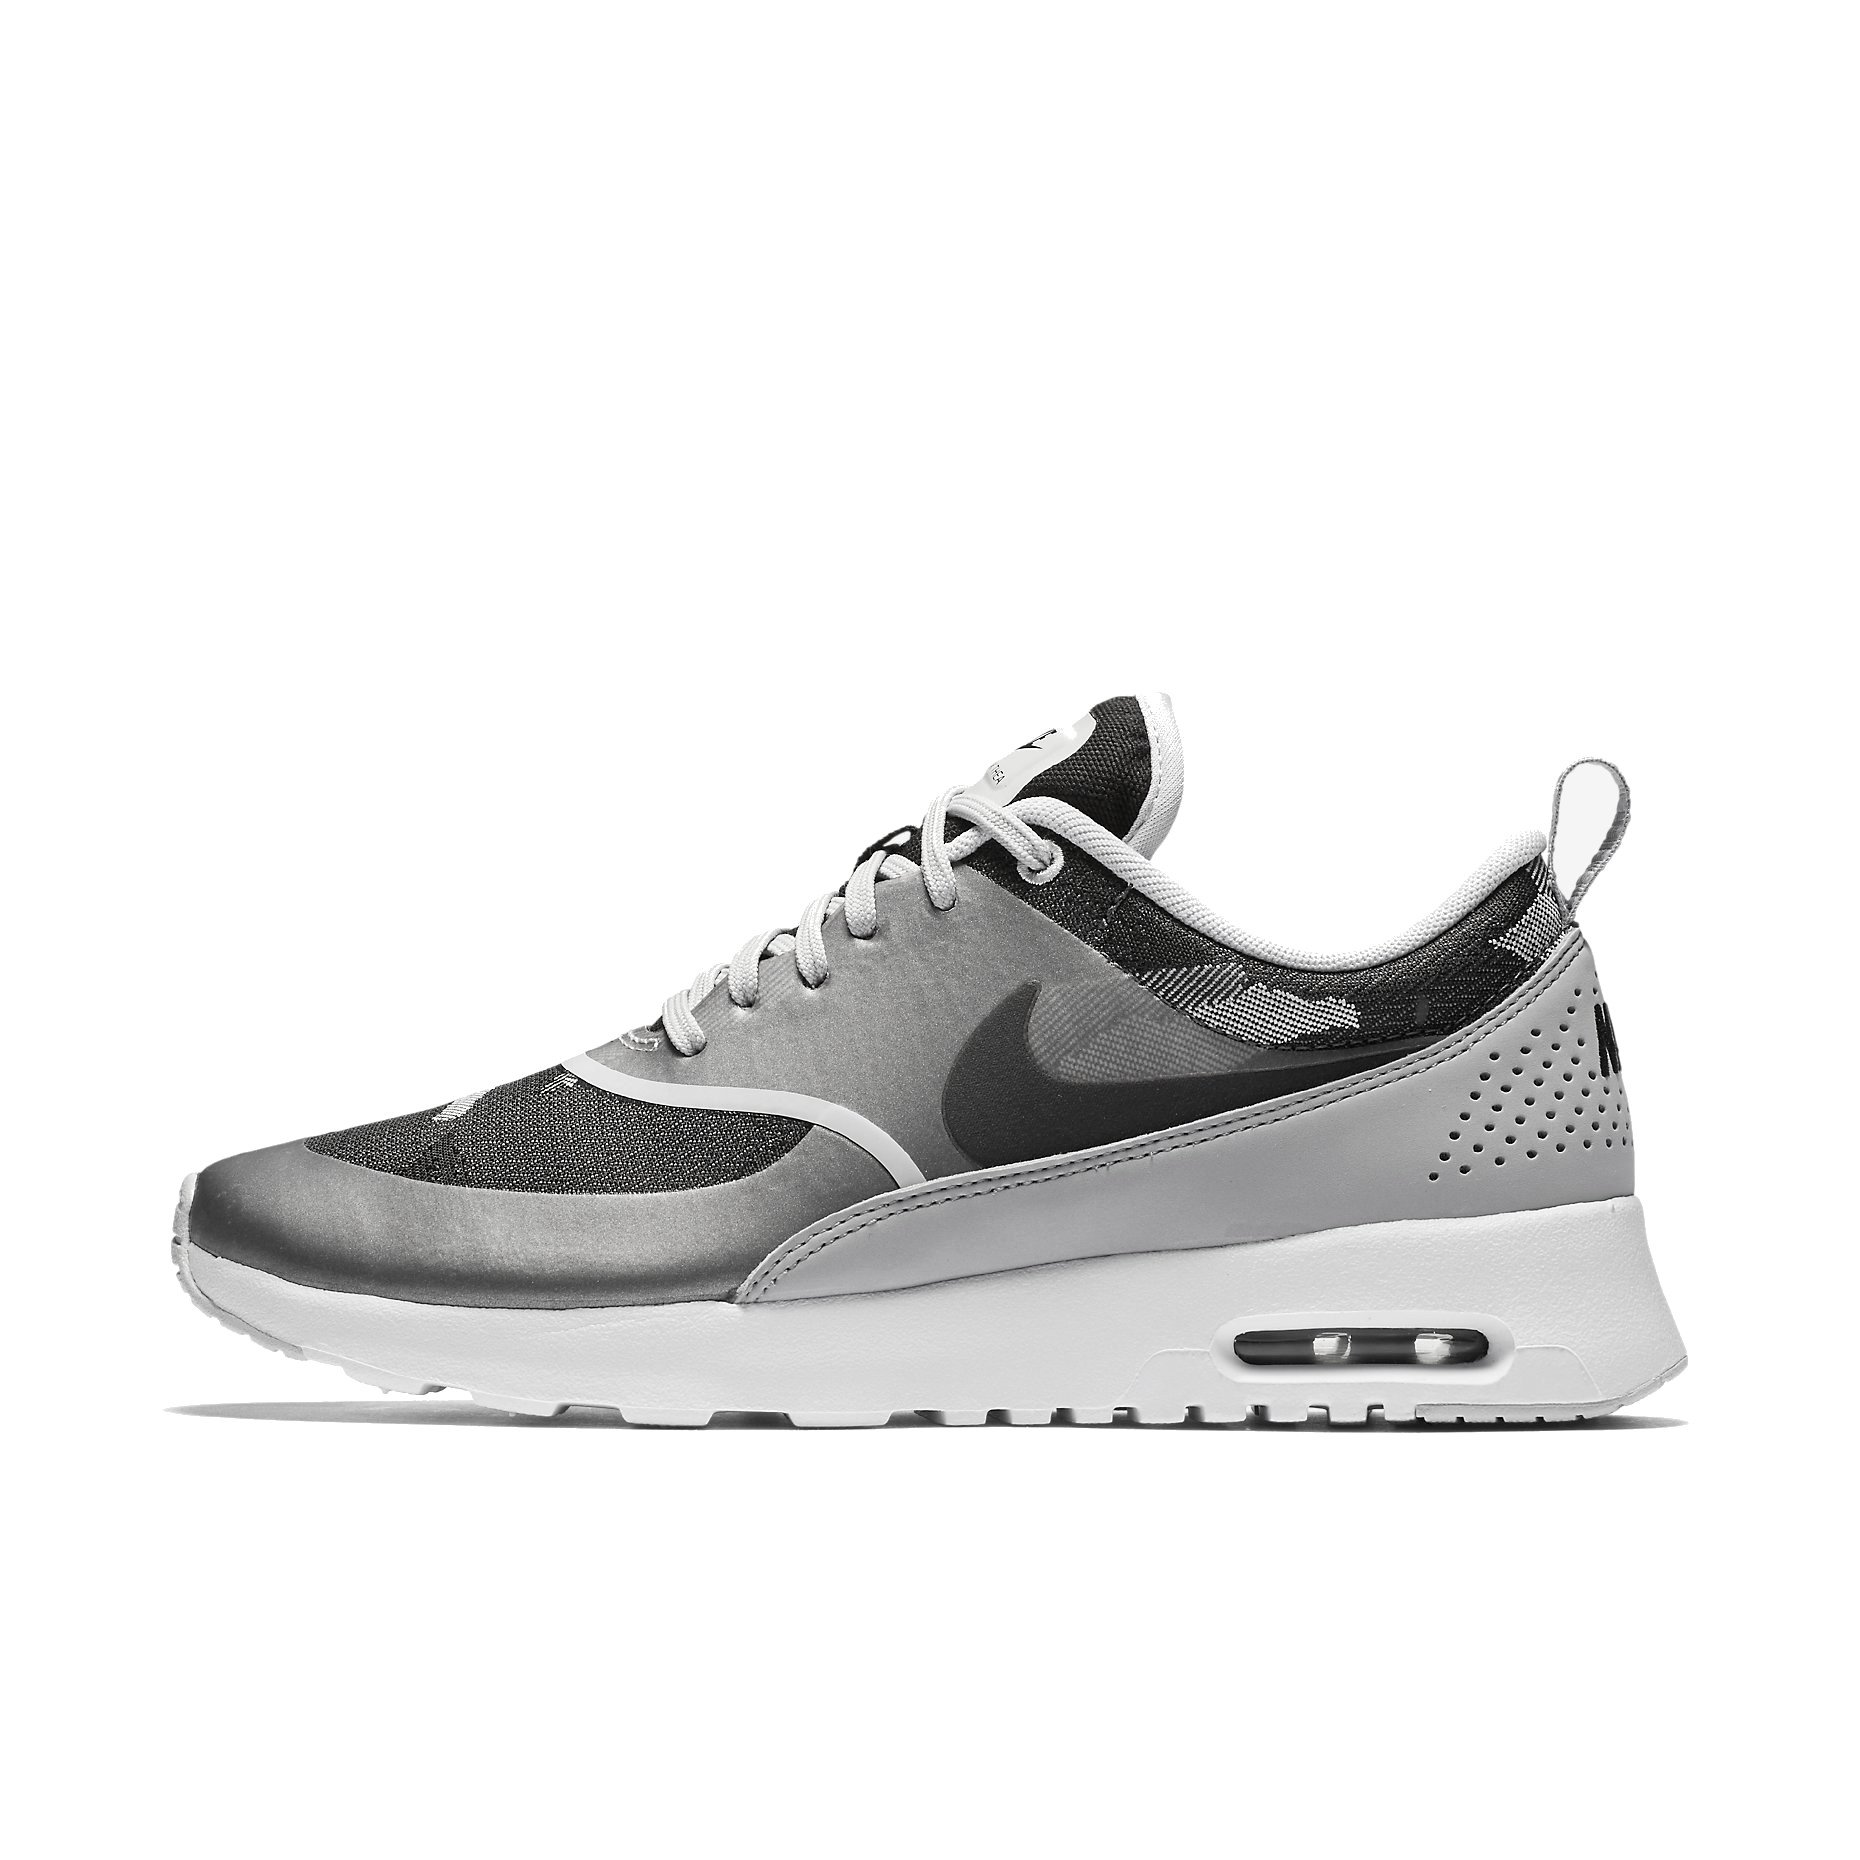 Nike Women's Wmns Air Max Thea JCRD, PURE PLATINUM/BLACK-WOLF GREY, 8 US